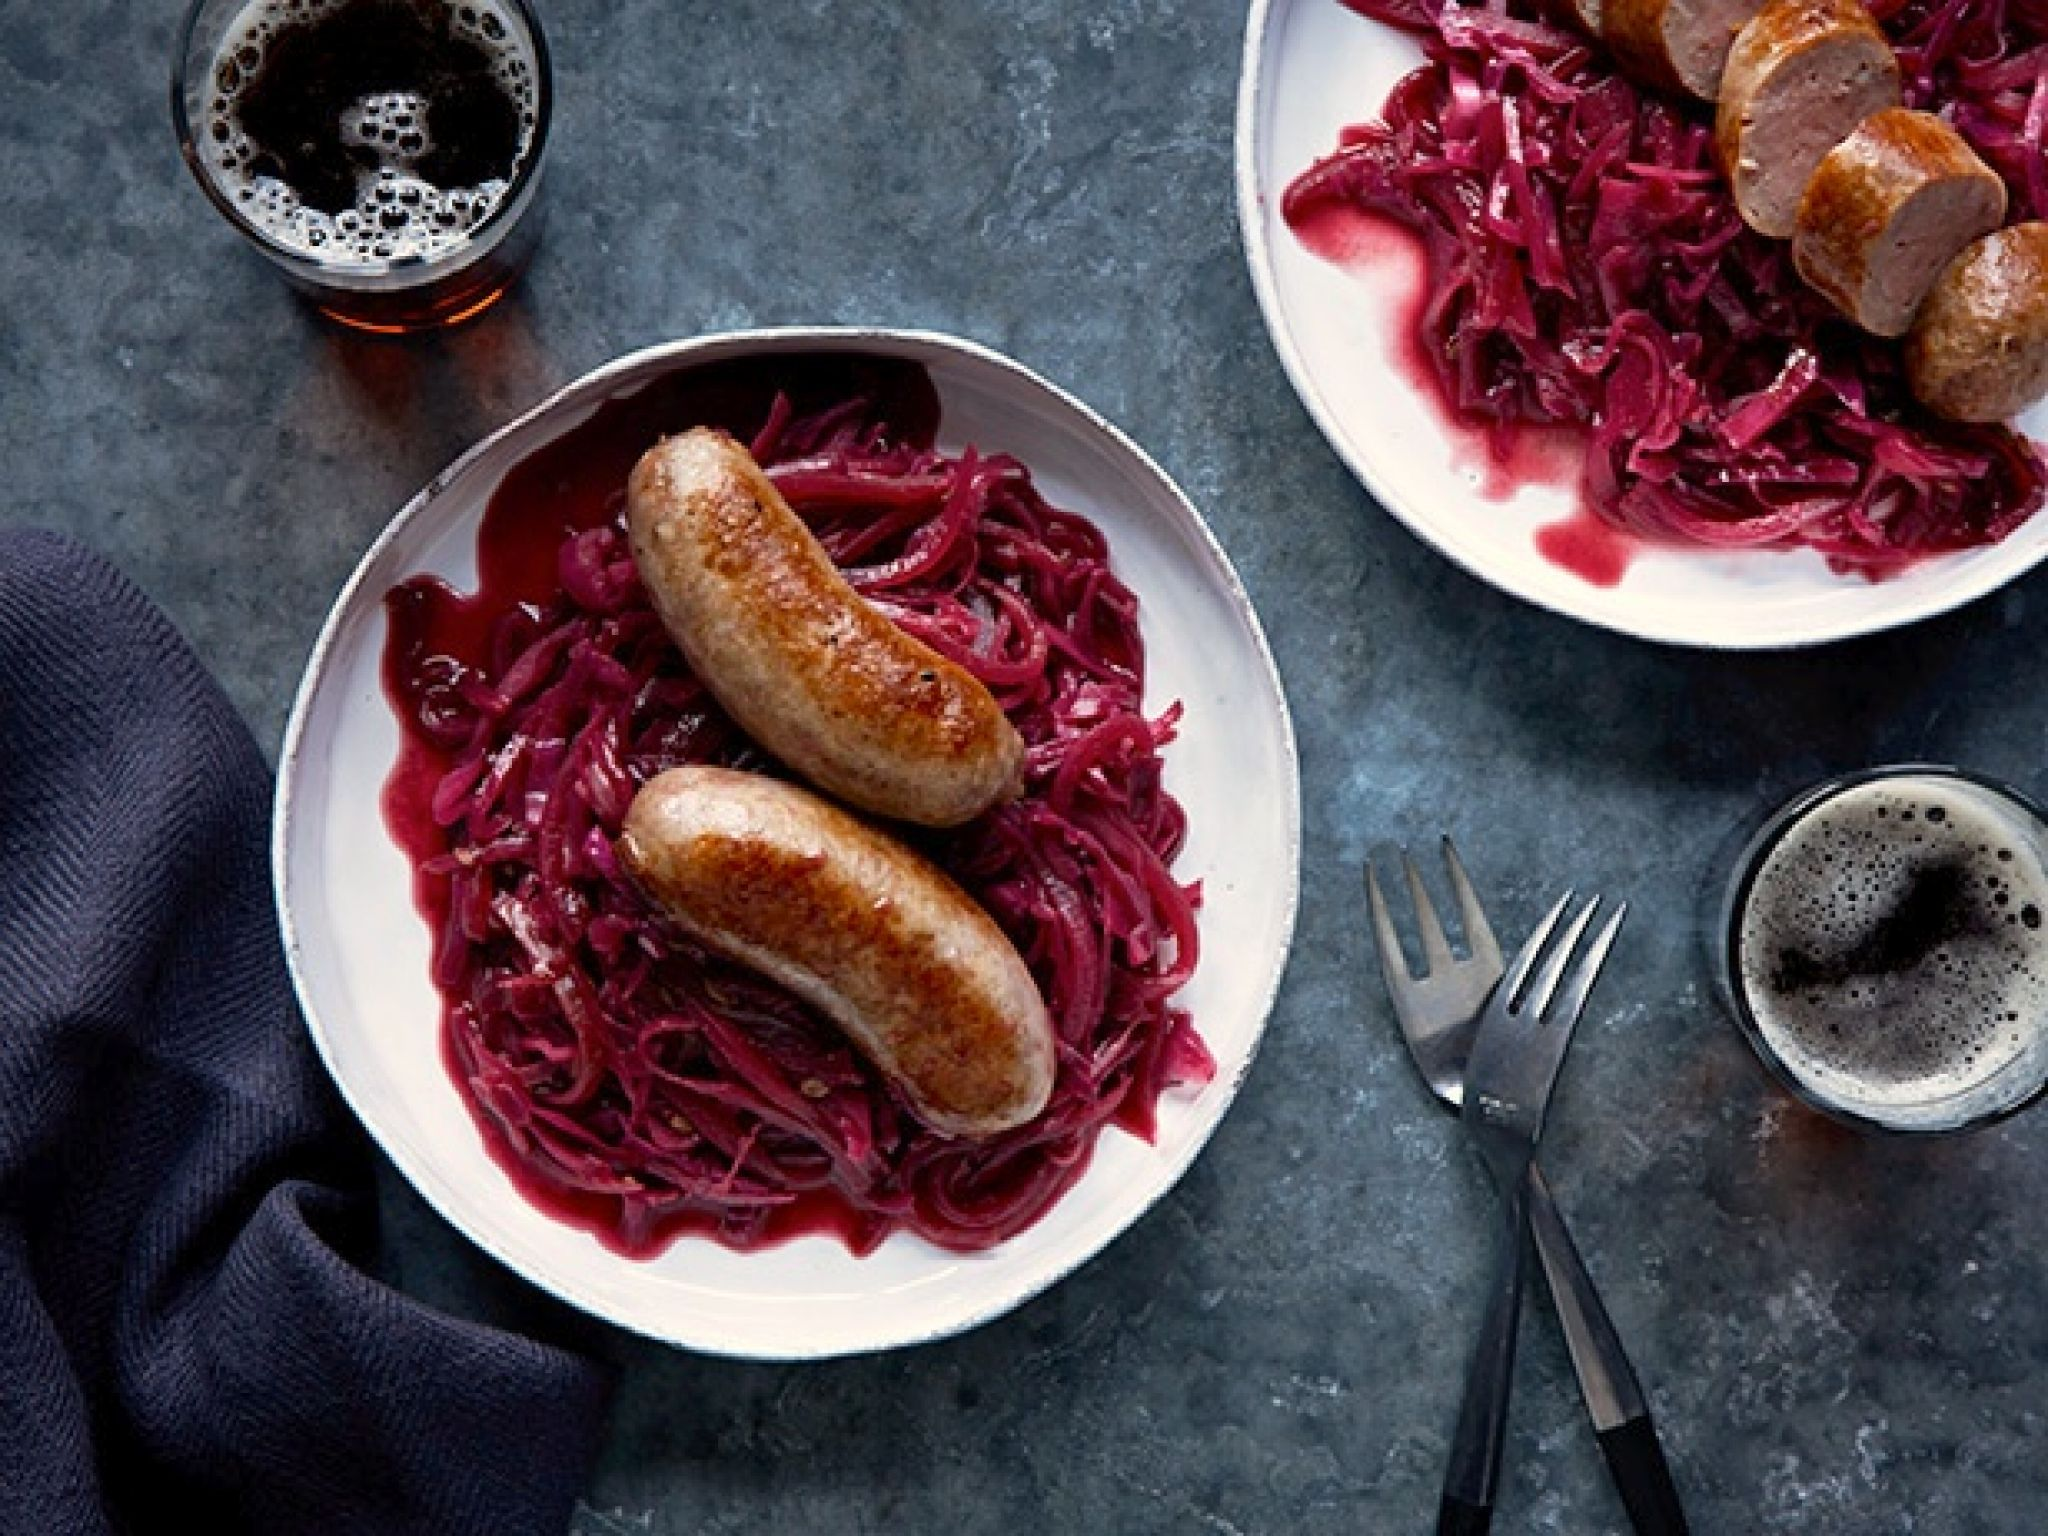 Our Chopped Dinner Challenge this week was acai juice. We wanted to highlight the earthy flavors and use the purple pigment to bring a hit of color to the dish, so we paired it with red cabbage and sausages. Chopped Basket Ingredient: acai juice  Read more at: http://www.foodnetwork.com/recipes/food-network- Bratwurst with Sweet-and-Sour Cabbage recipe from Food Network